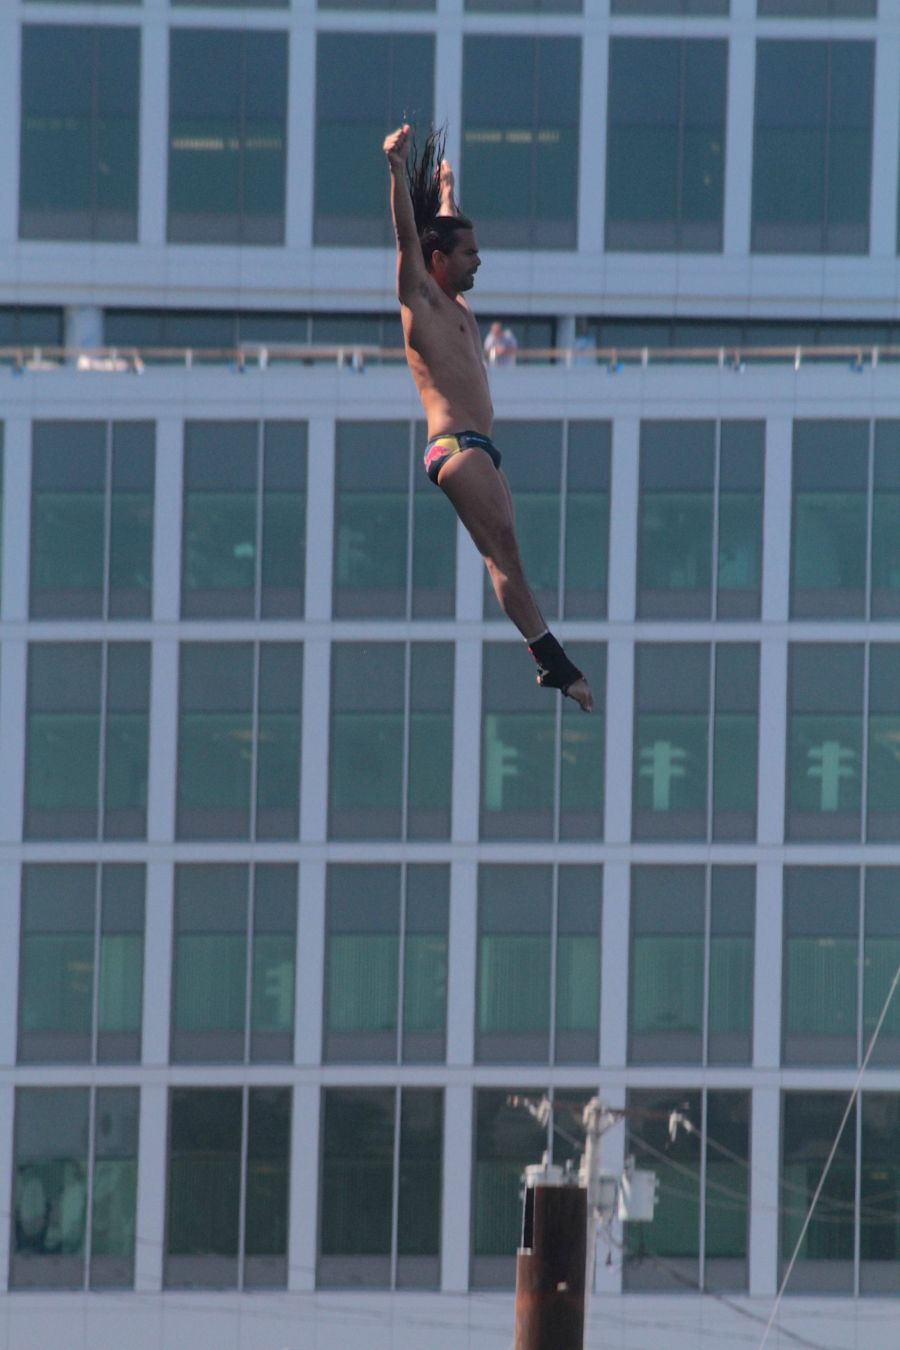 boston institute of contemporary art red bull diving competition august 25 2013 orlando duque 6